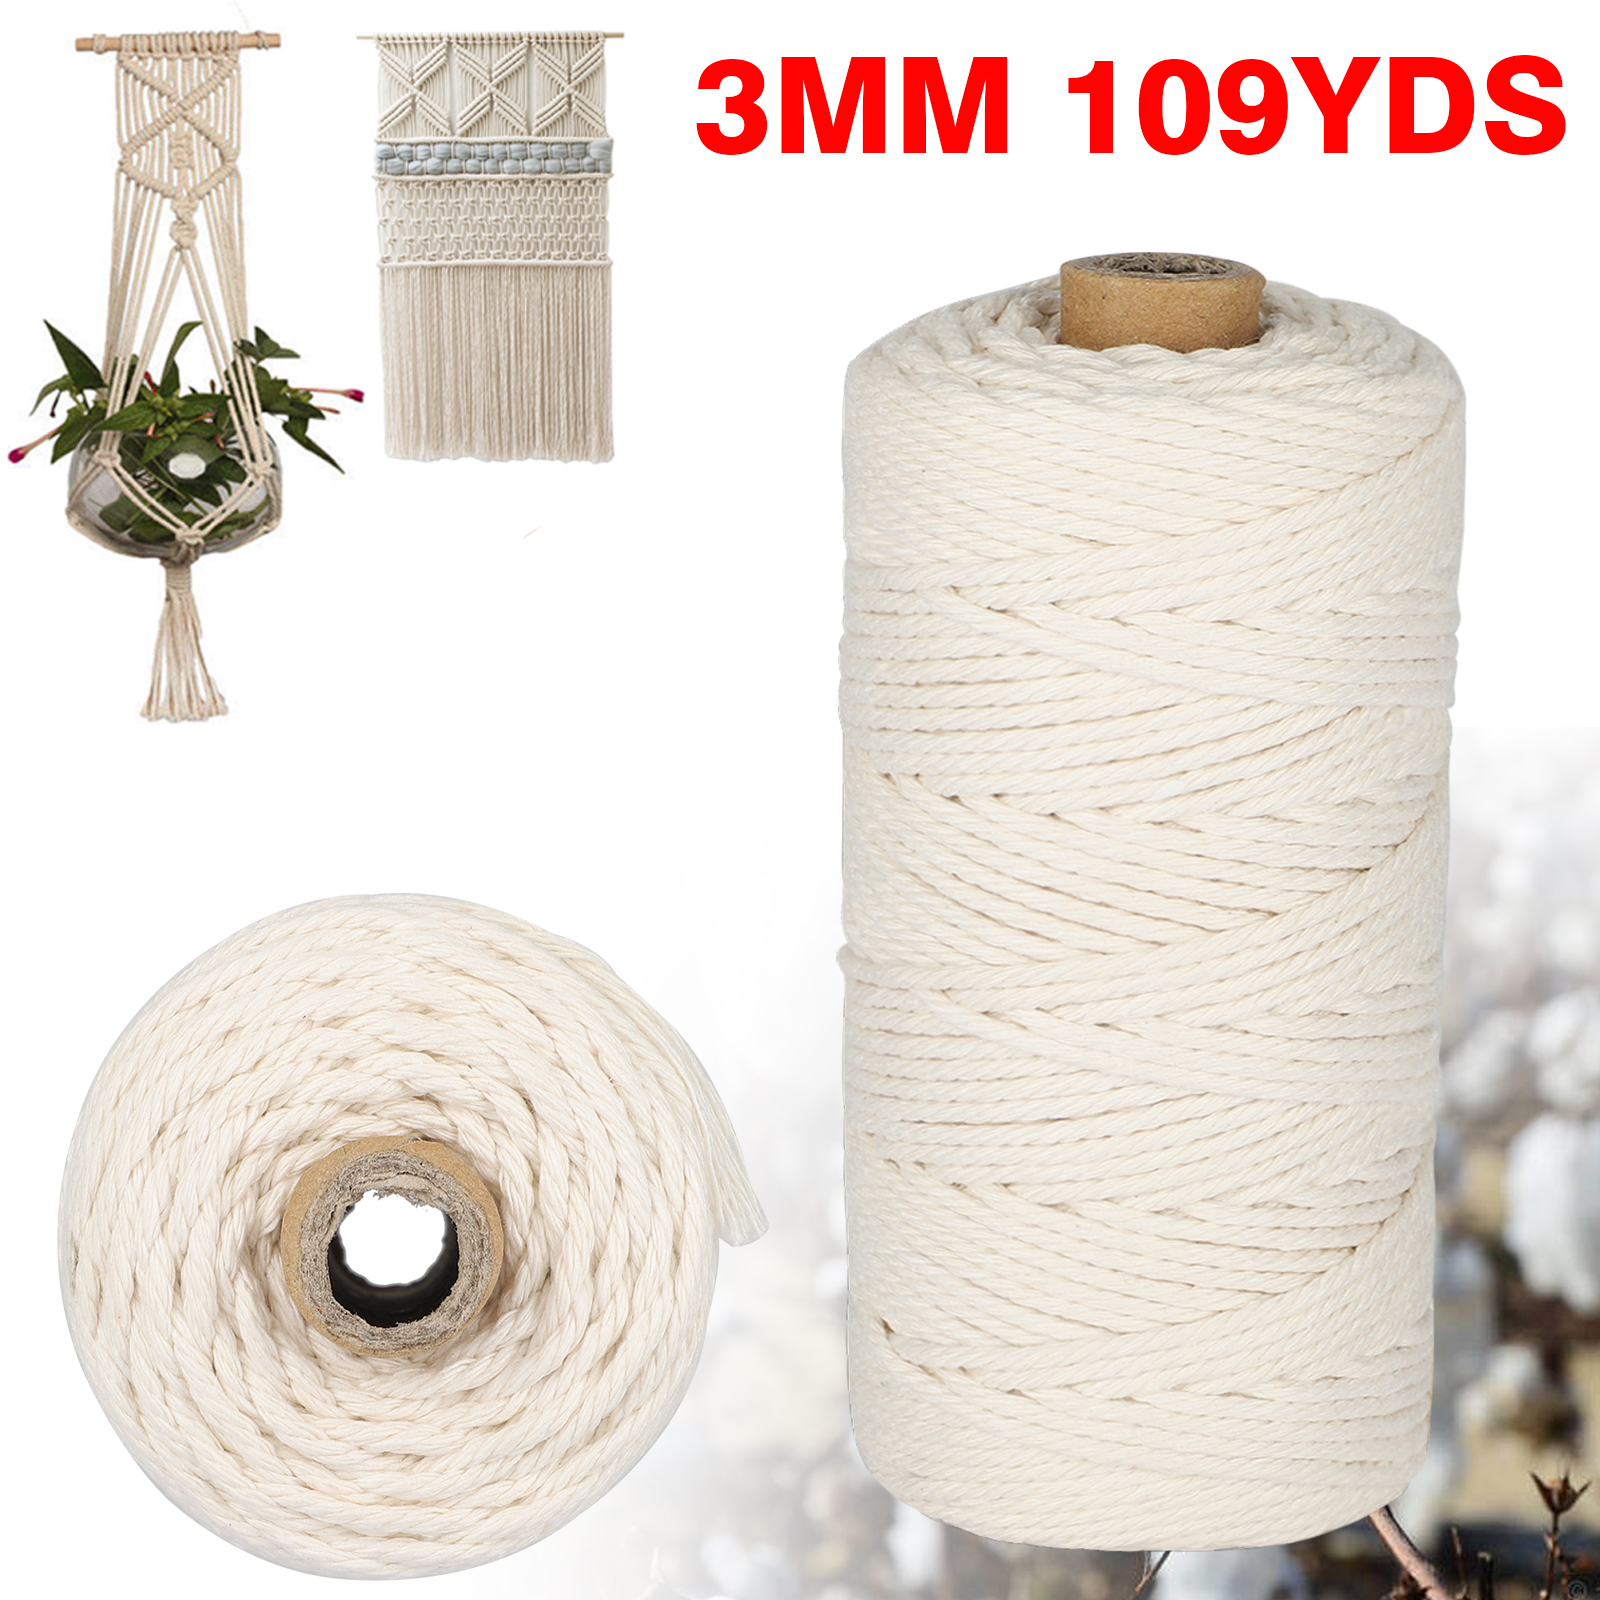 2x 100m//109yd Gold Glitter White Cotton Twine Wedding Party Gift Wrapping String